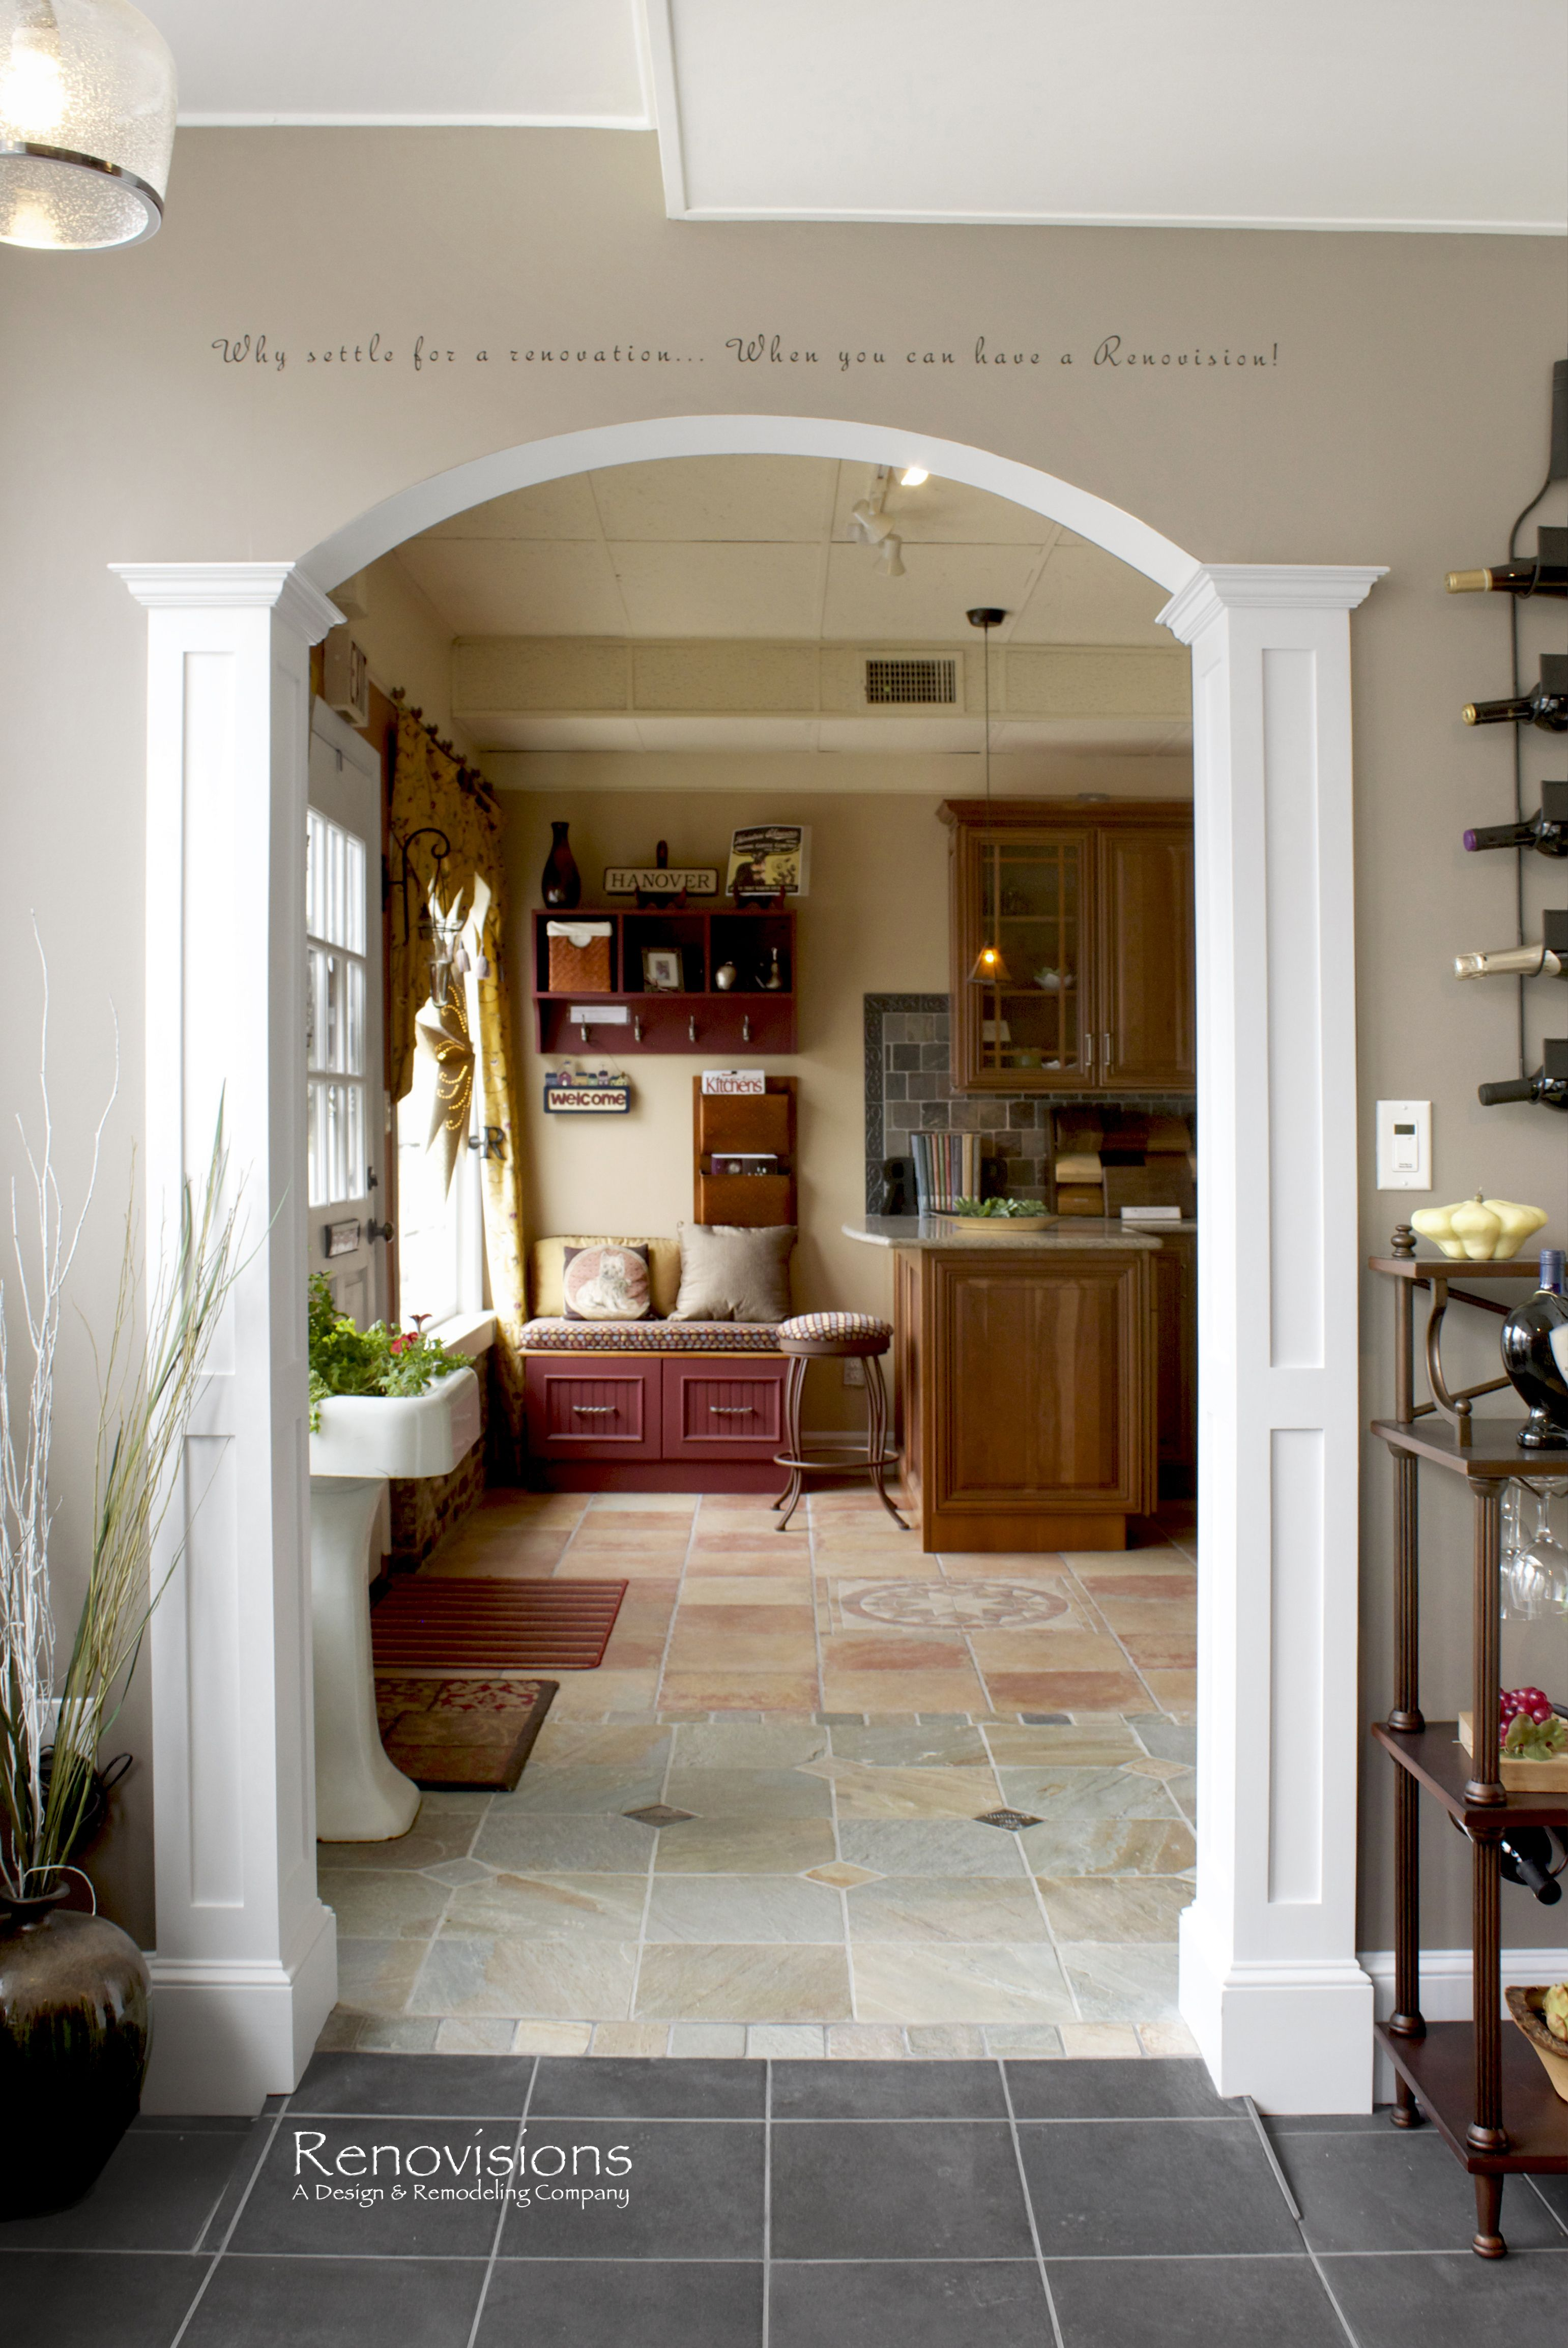 Why settle for a renovation... When you can have a Renovision ...